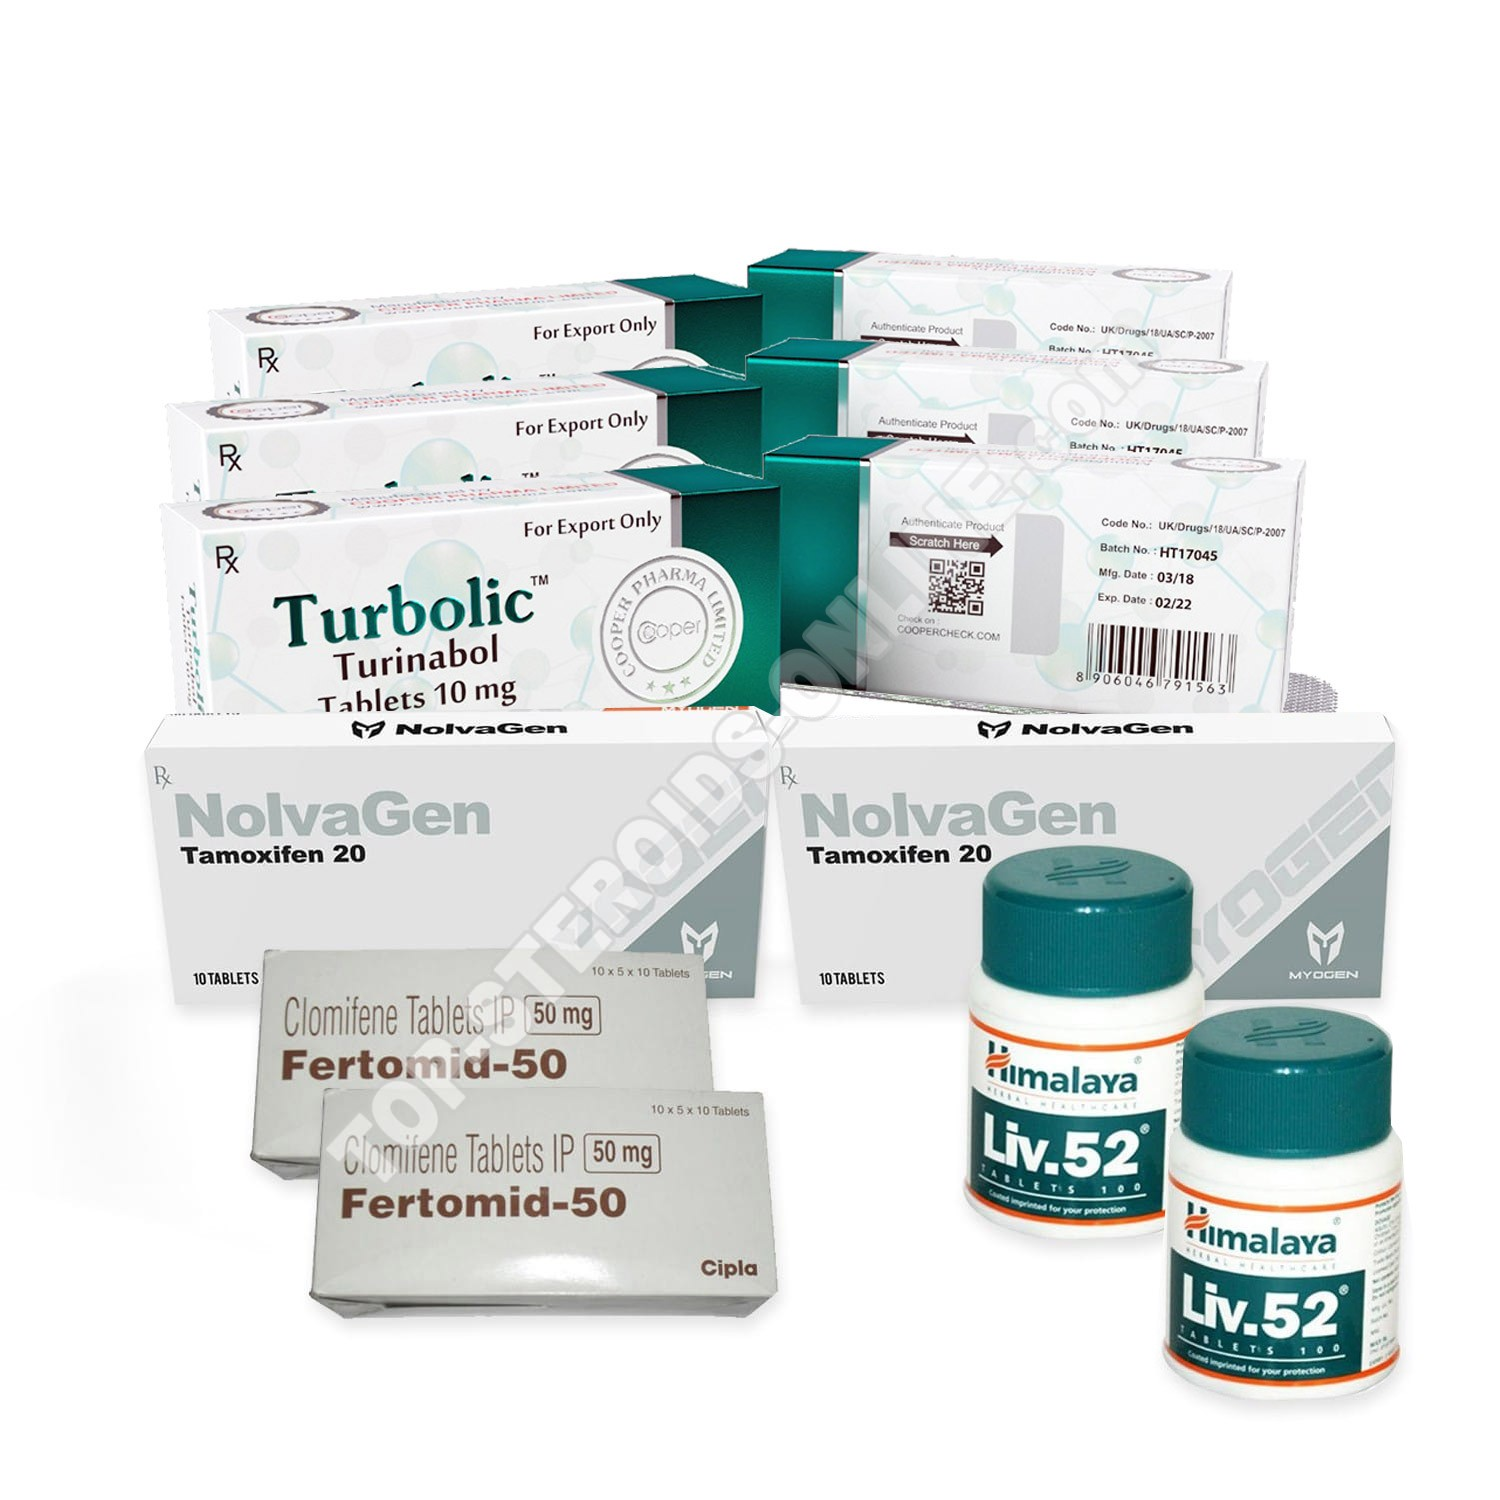 LEAN MUSCLE LEVEL II PACK (ORAL) COOPER - TURBOLIC + PROTECTION + PCT (8 WEEKS)